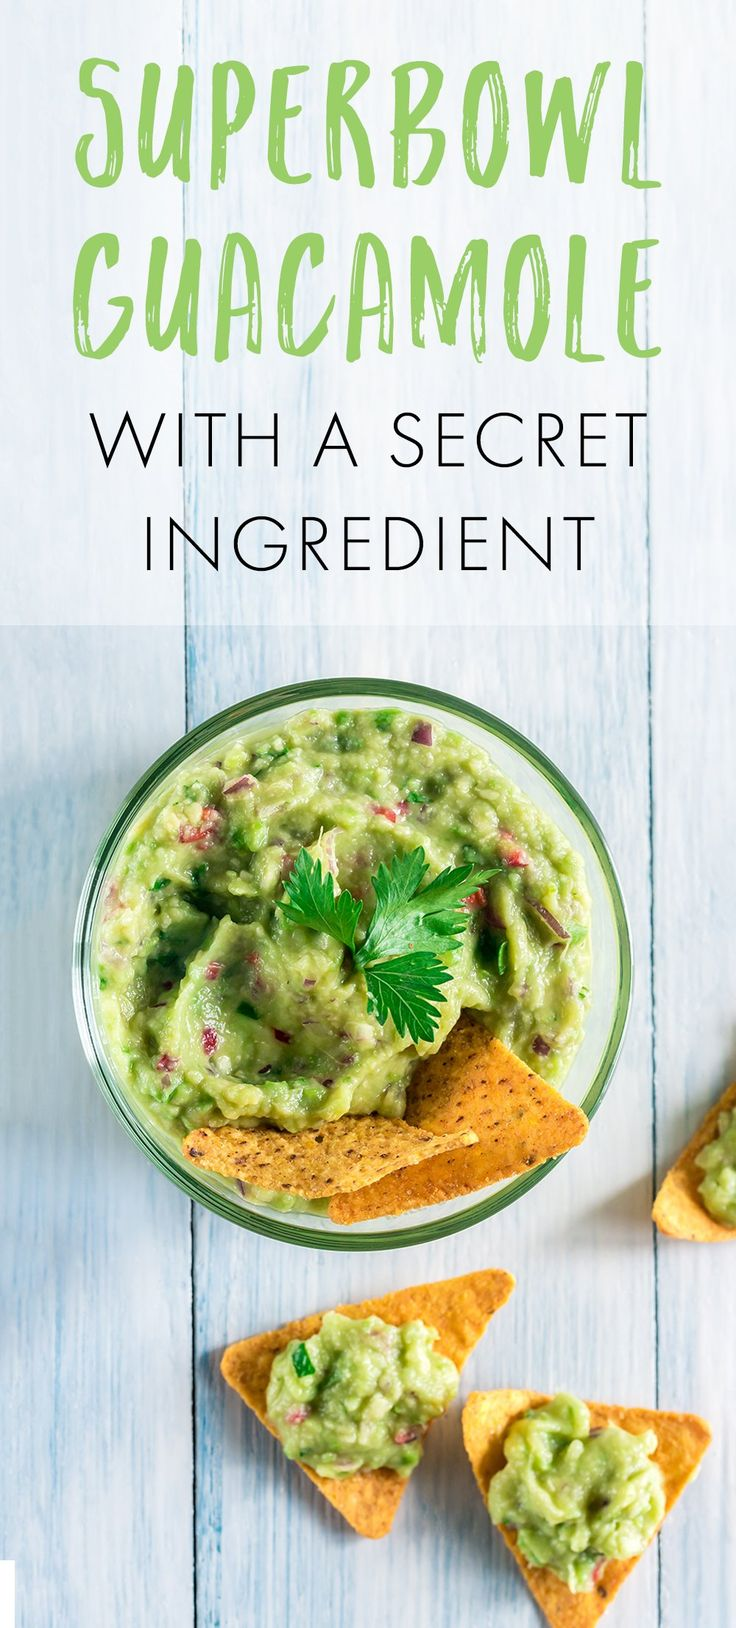 Whether you're hosting or you're invited to a Super Bowl party next weekend, you can't go wrong with a great guacamole. Here's our recipe with a little twist.